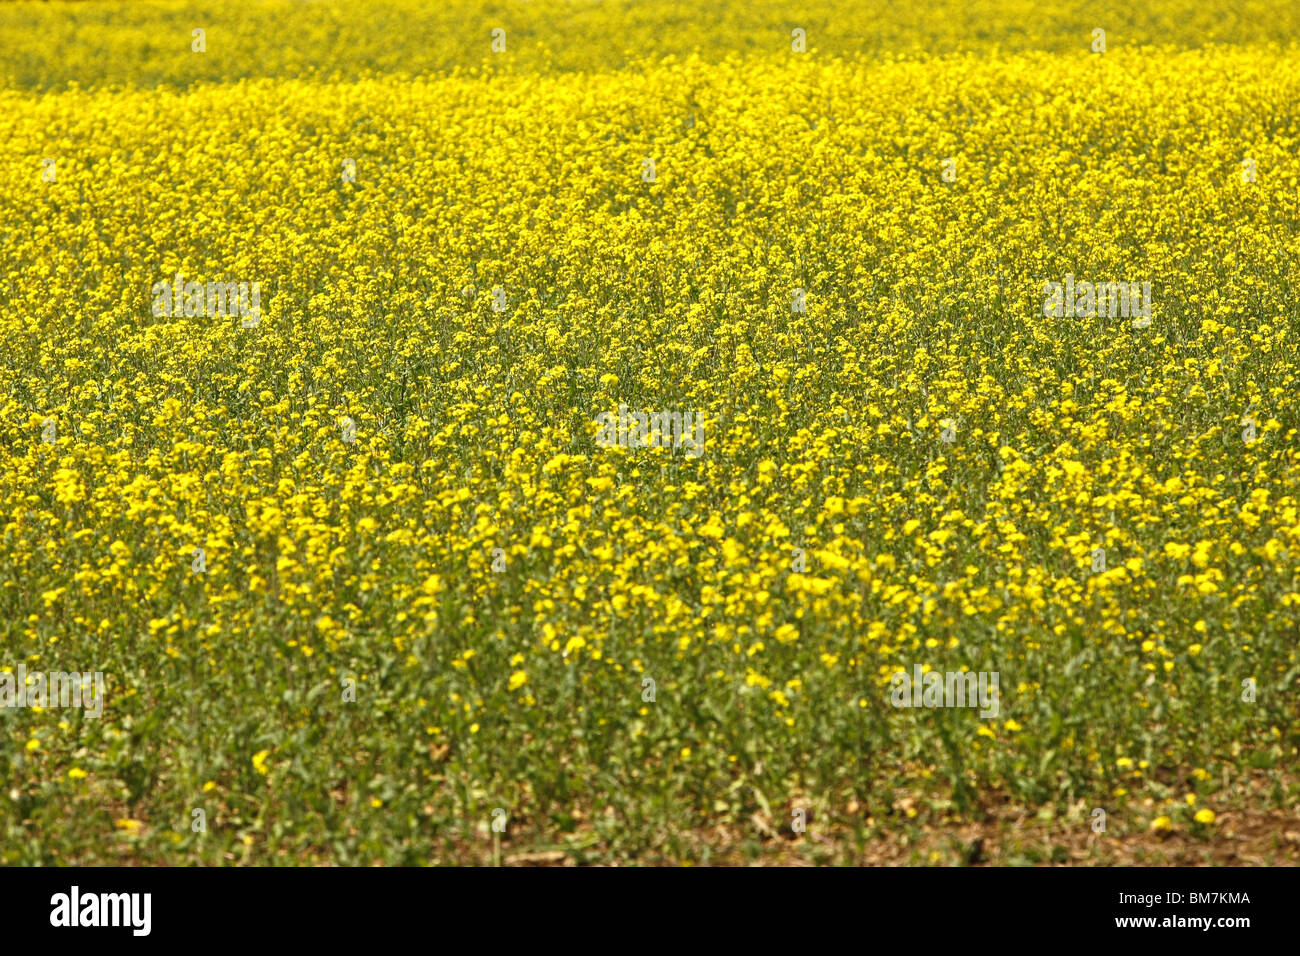 Rapeseed flowers crop stock photos rapeseed flowers crop stock the yellow flowers of the rapeseed plant cultivated by farmers as a cash crop for its mightylinksfo